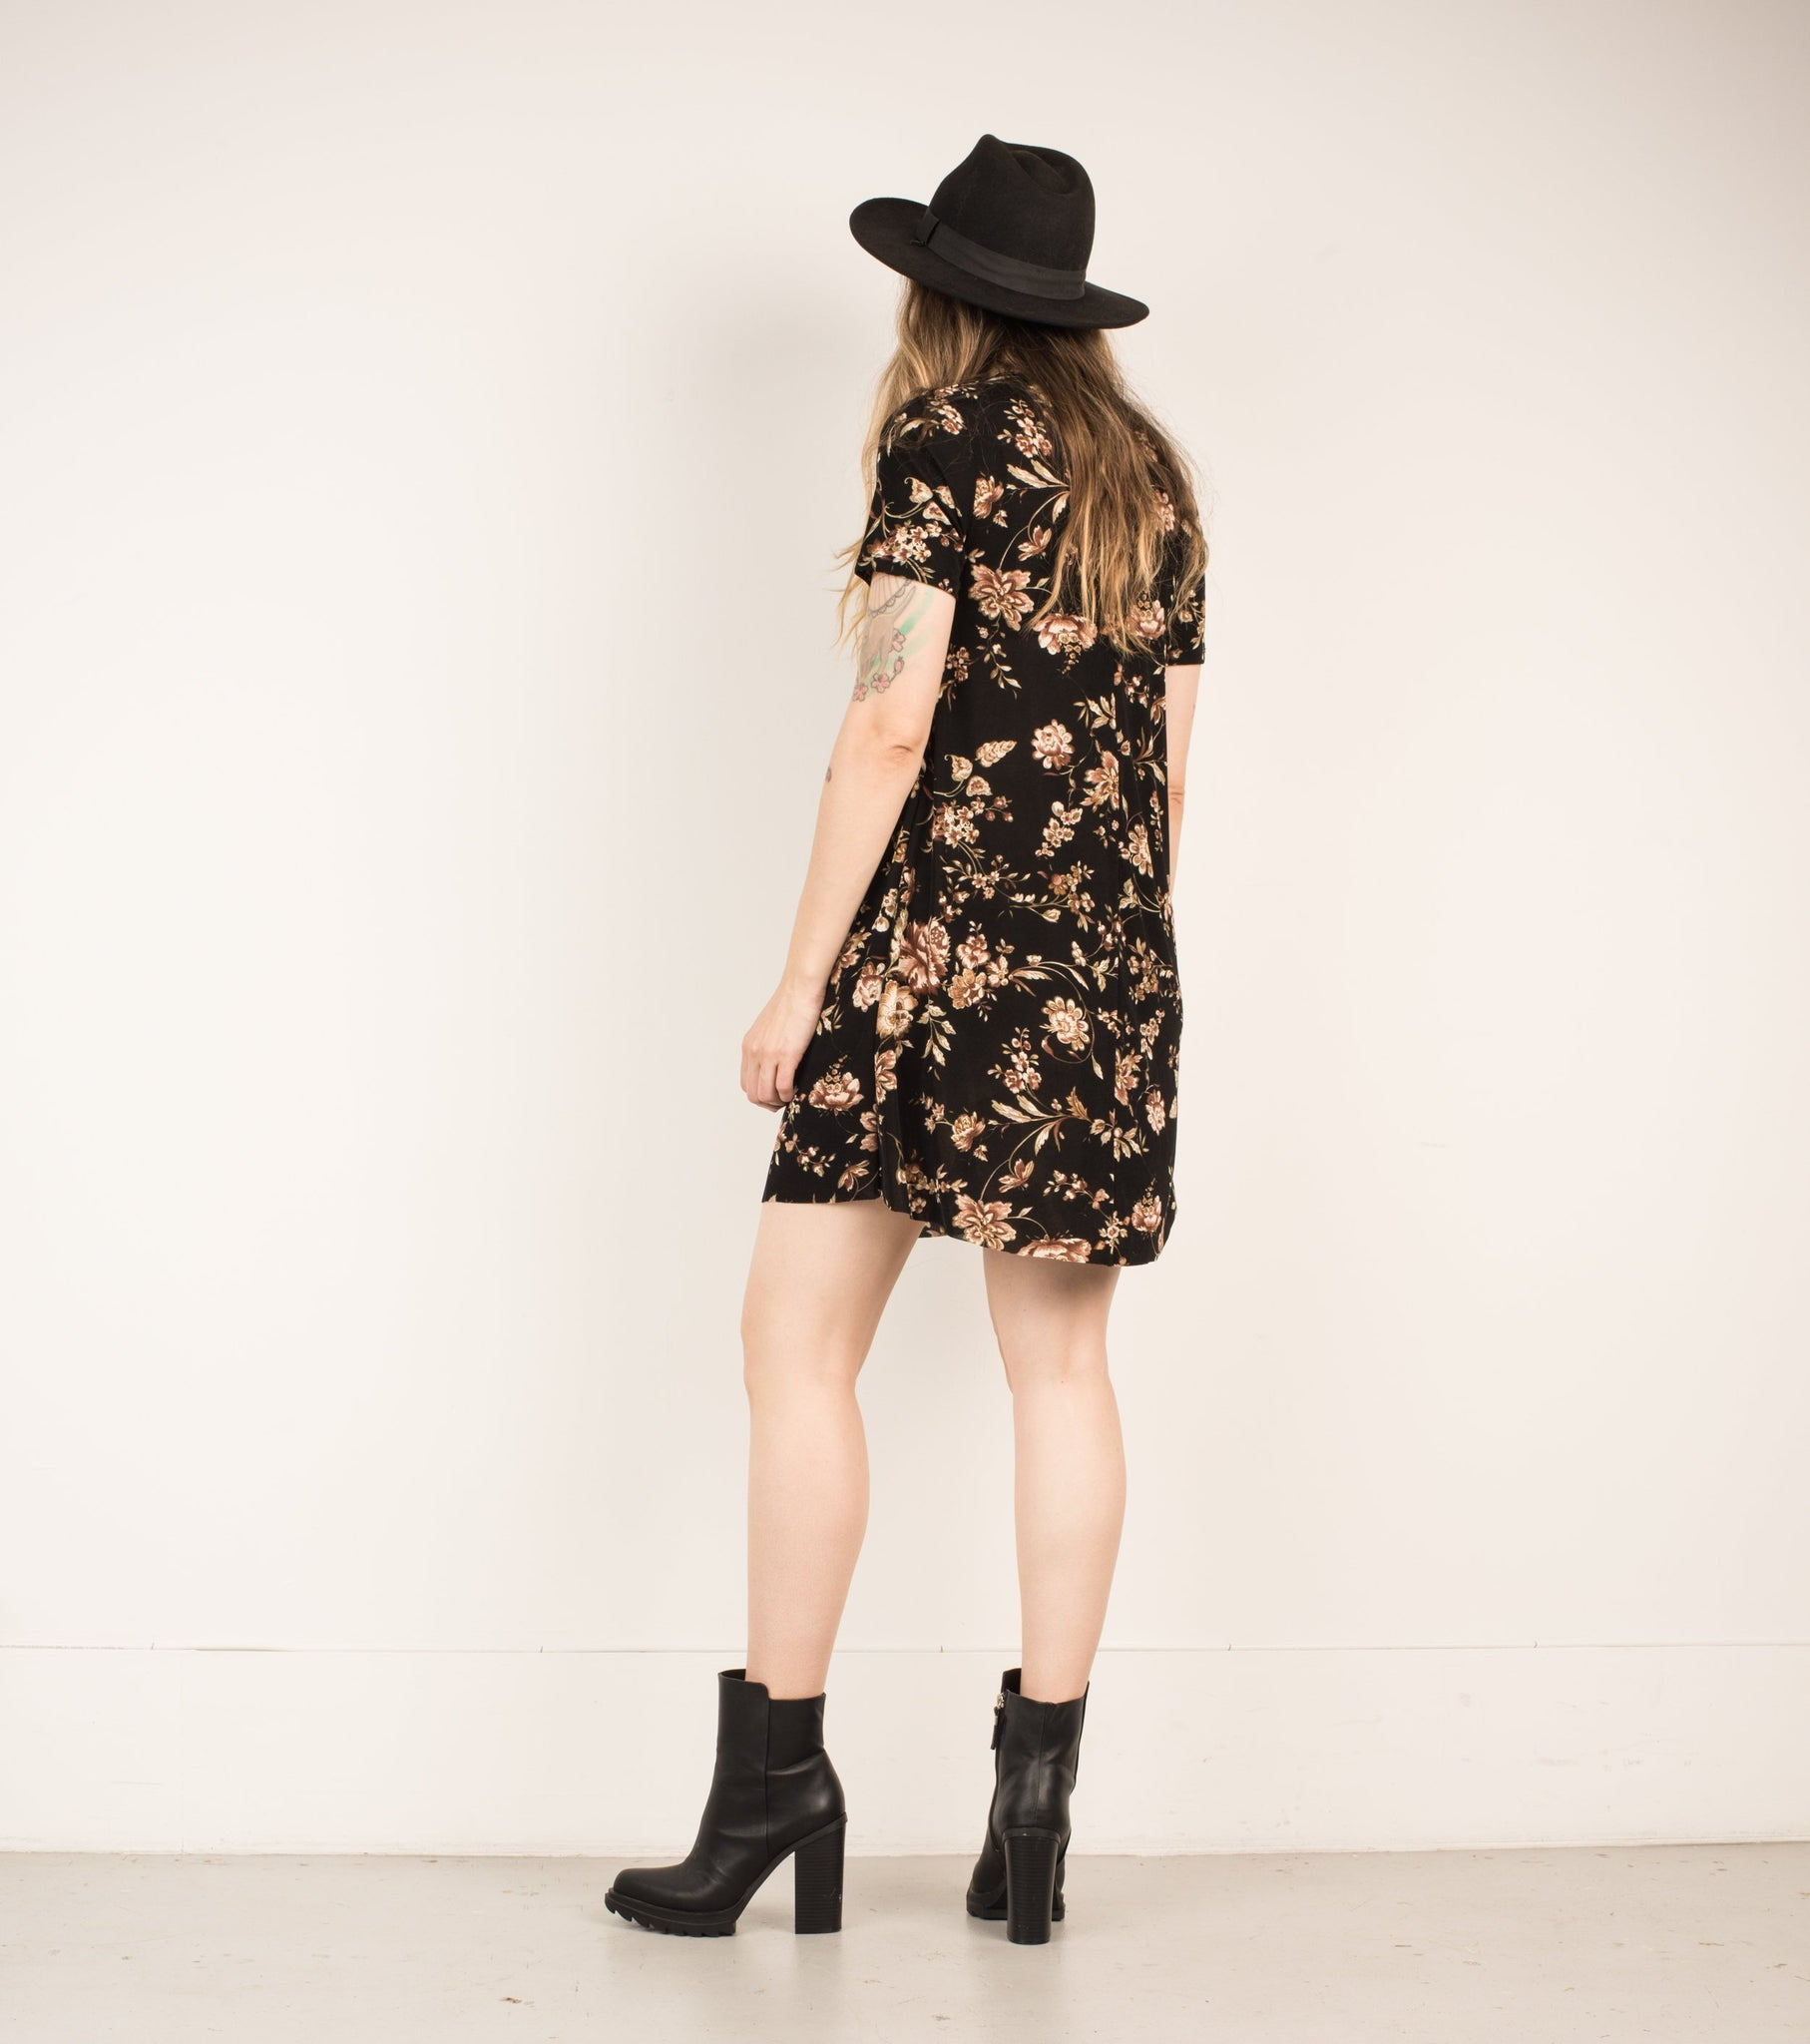 Vintage Black + Almond Floral Slinky Dress / S - Closed Caption